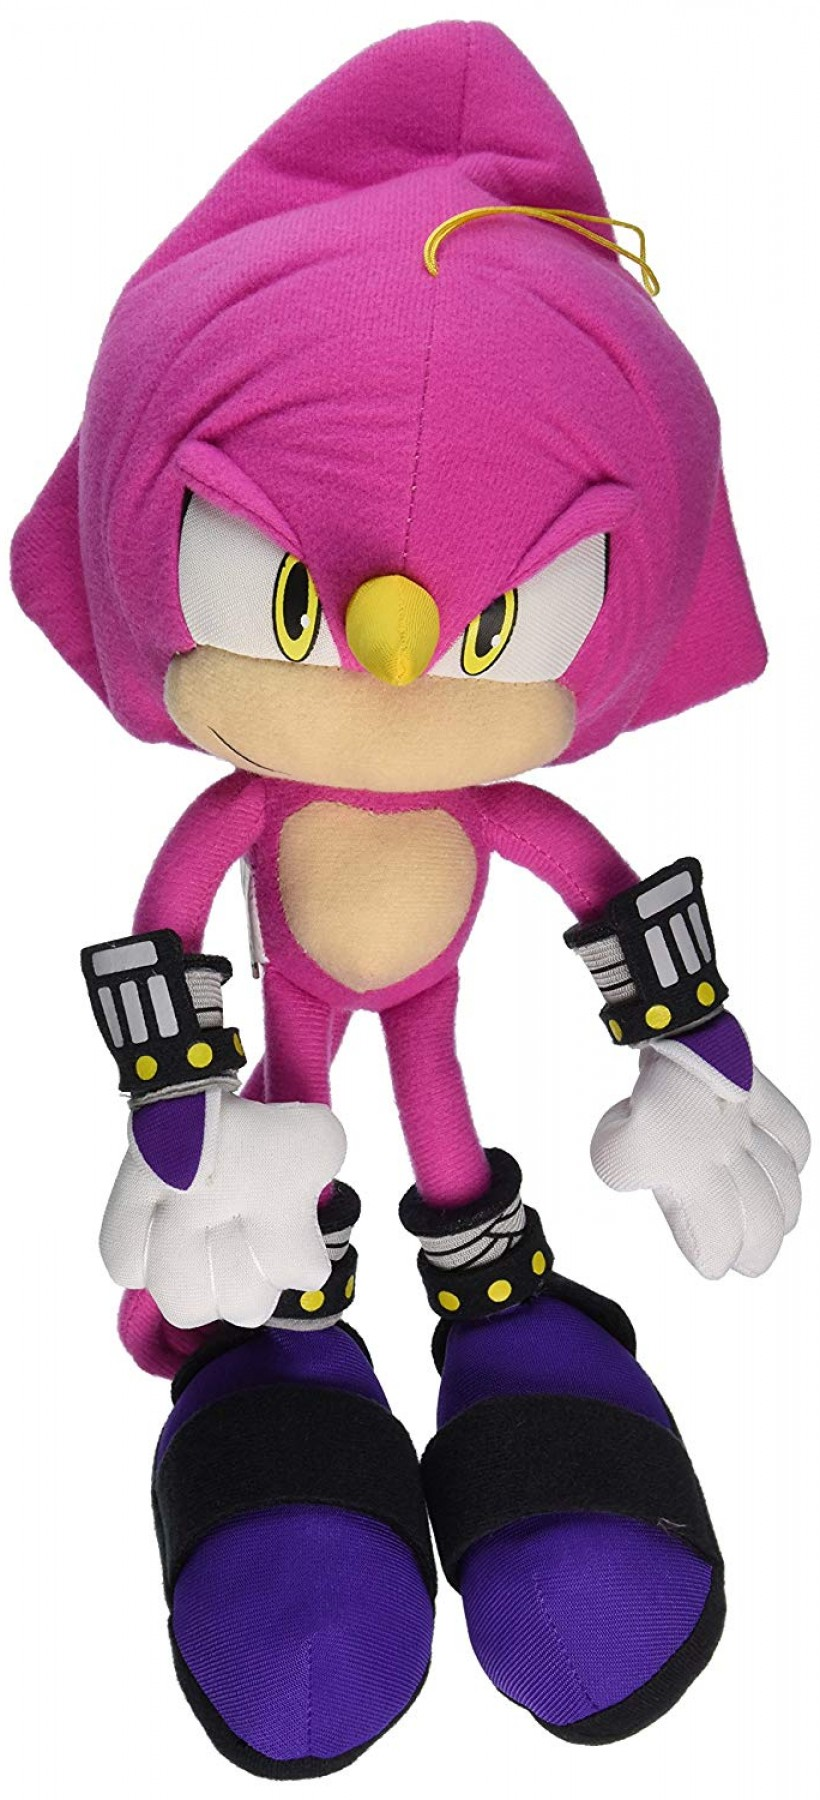 Vector And Espio Toy: Sonic The Hedgehog Team Chaotix Vector Espio Charmy Bee Figur Set By Toy Zany